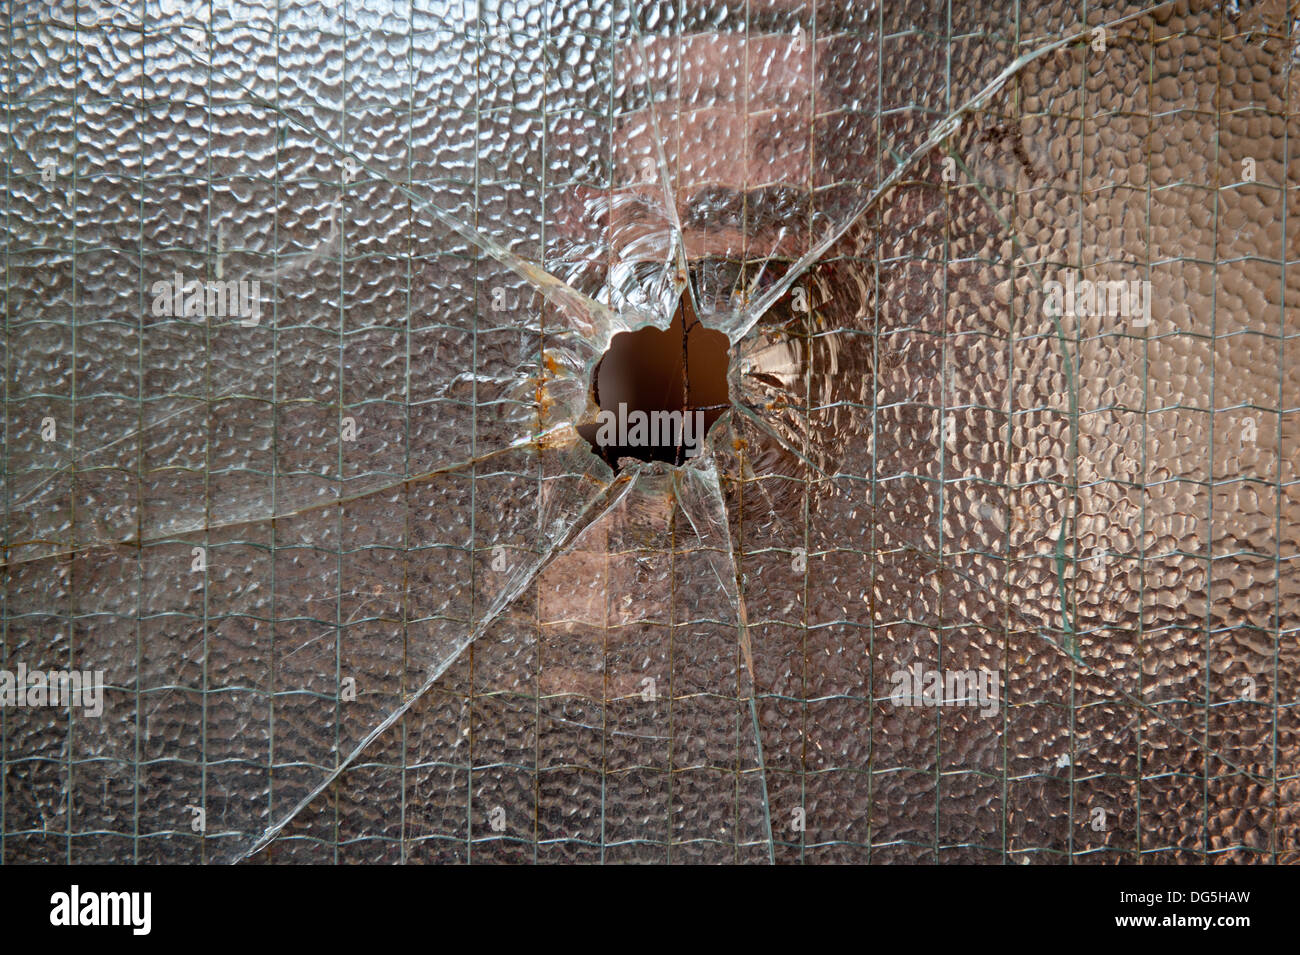 A hole on tome toughened glass that could have been caused by a bullet from a gun - Stock Image